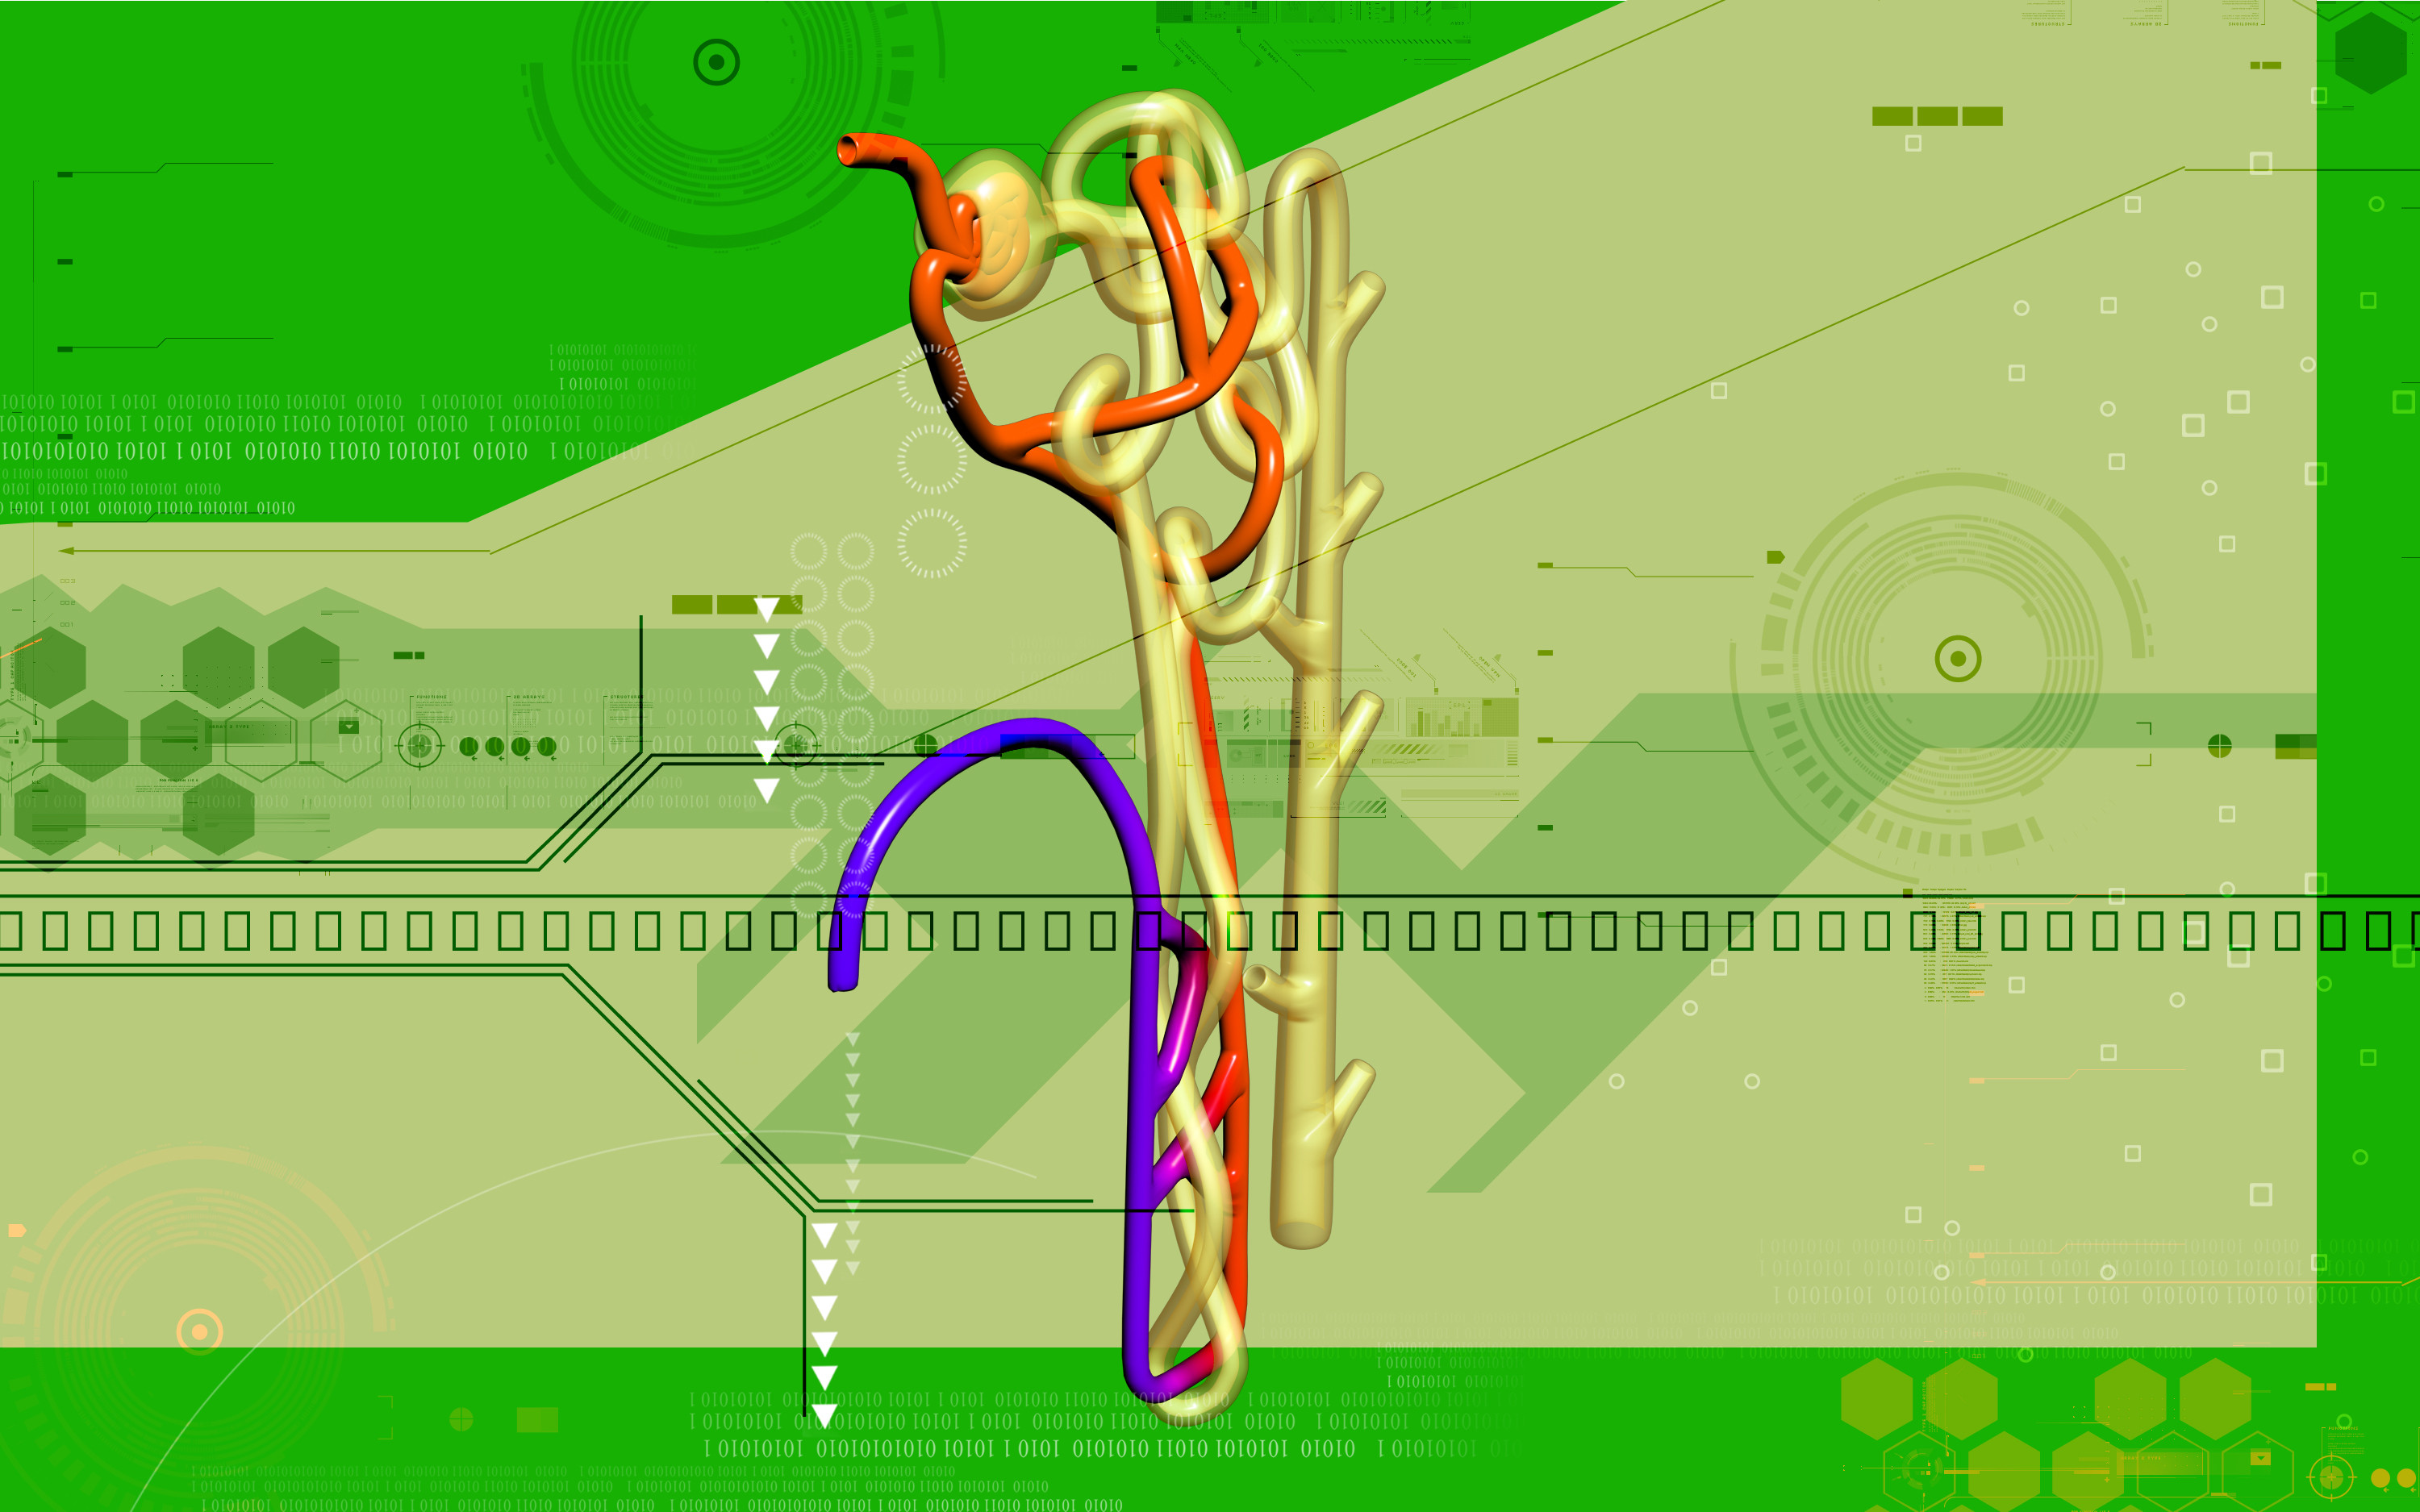 nephron diagram from a textbook 2000 jeep cherokee sport tail light wiring structure and function